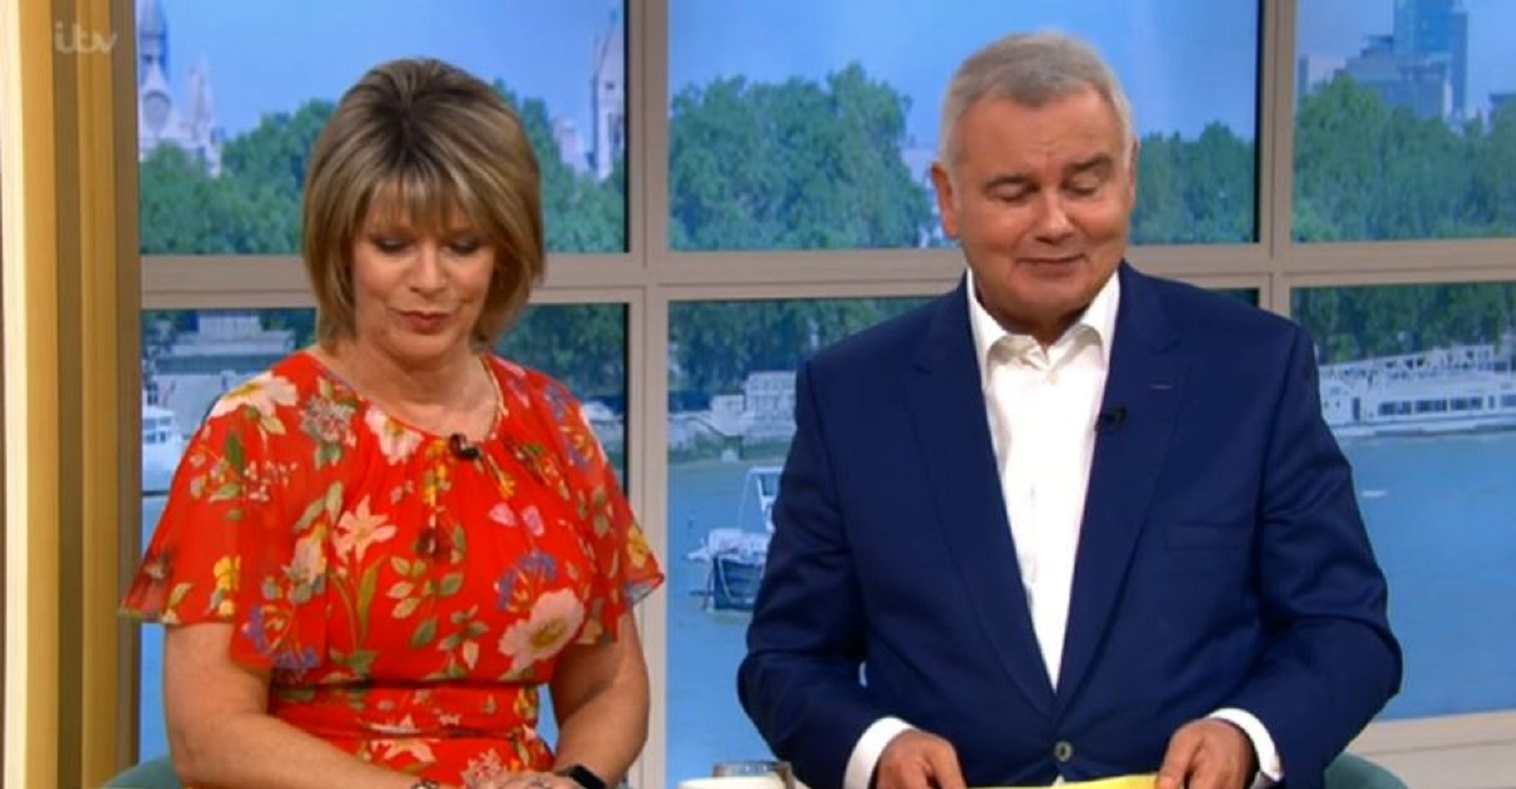 This Morning: Eamonn Holmes and Ruth Langsford clash again over correct way to pronounce leprechaun